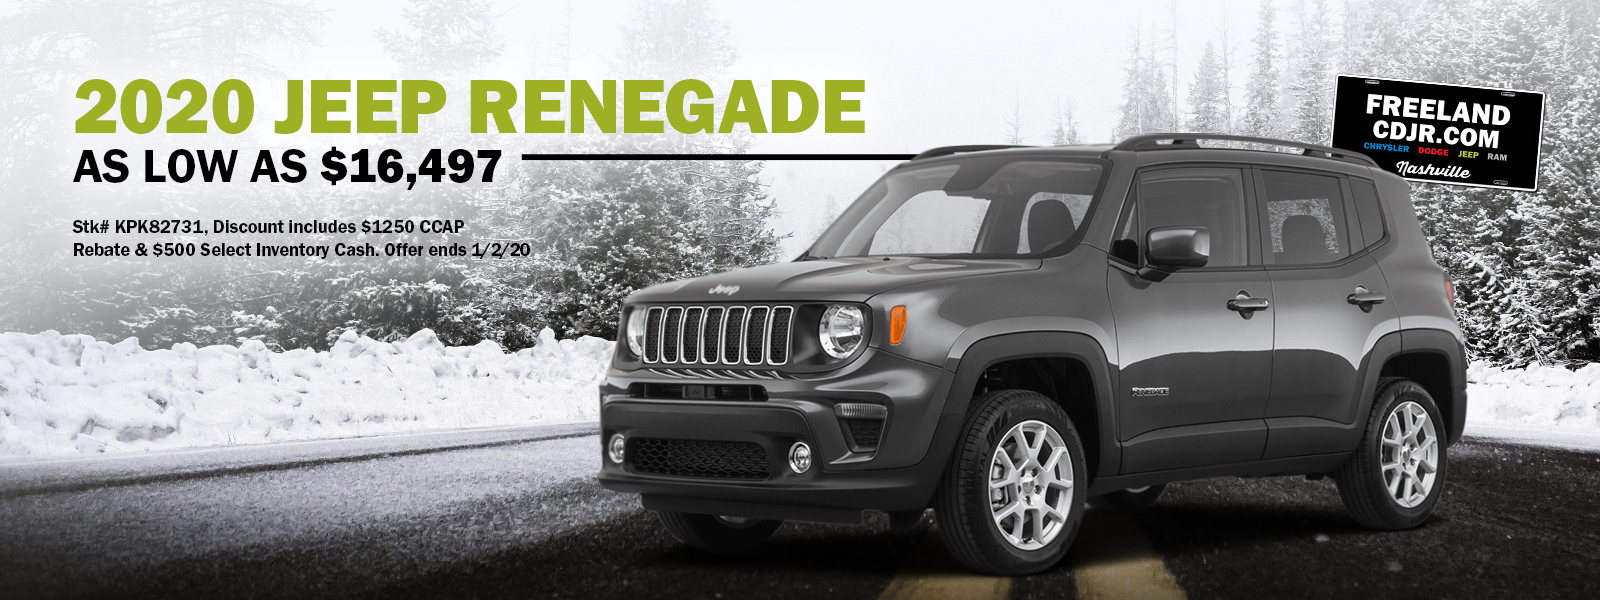 low priced jeep renegade